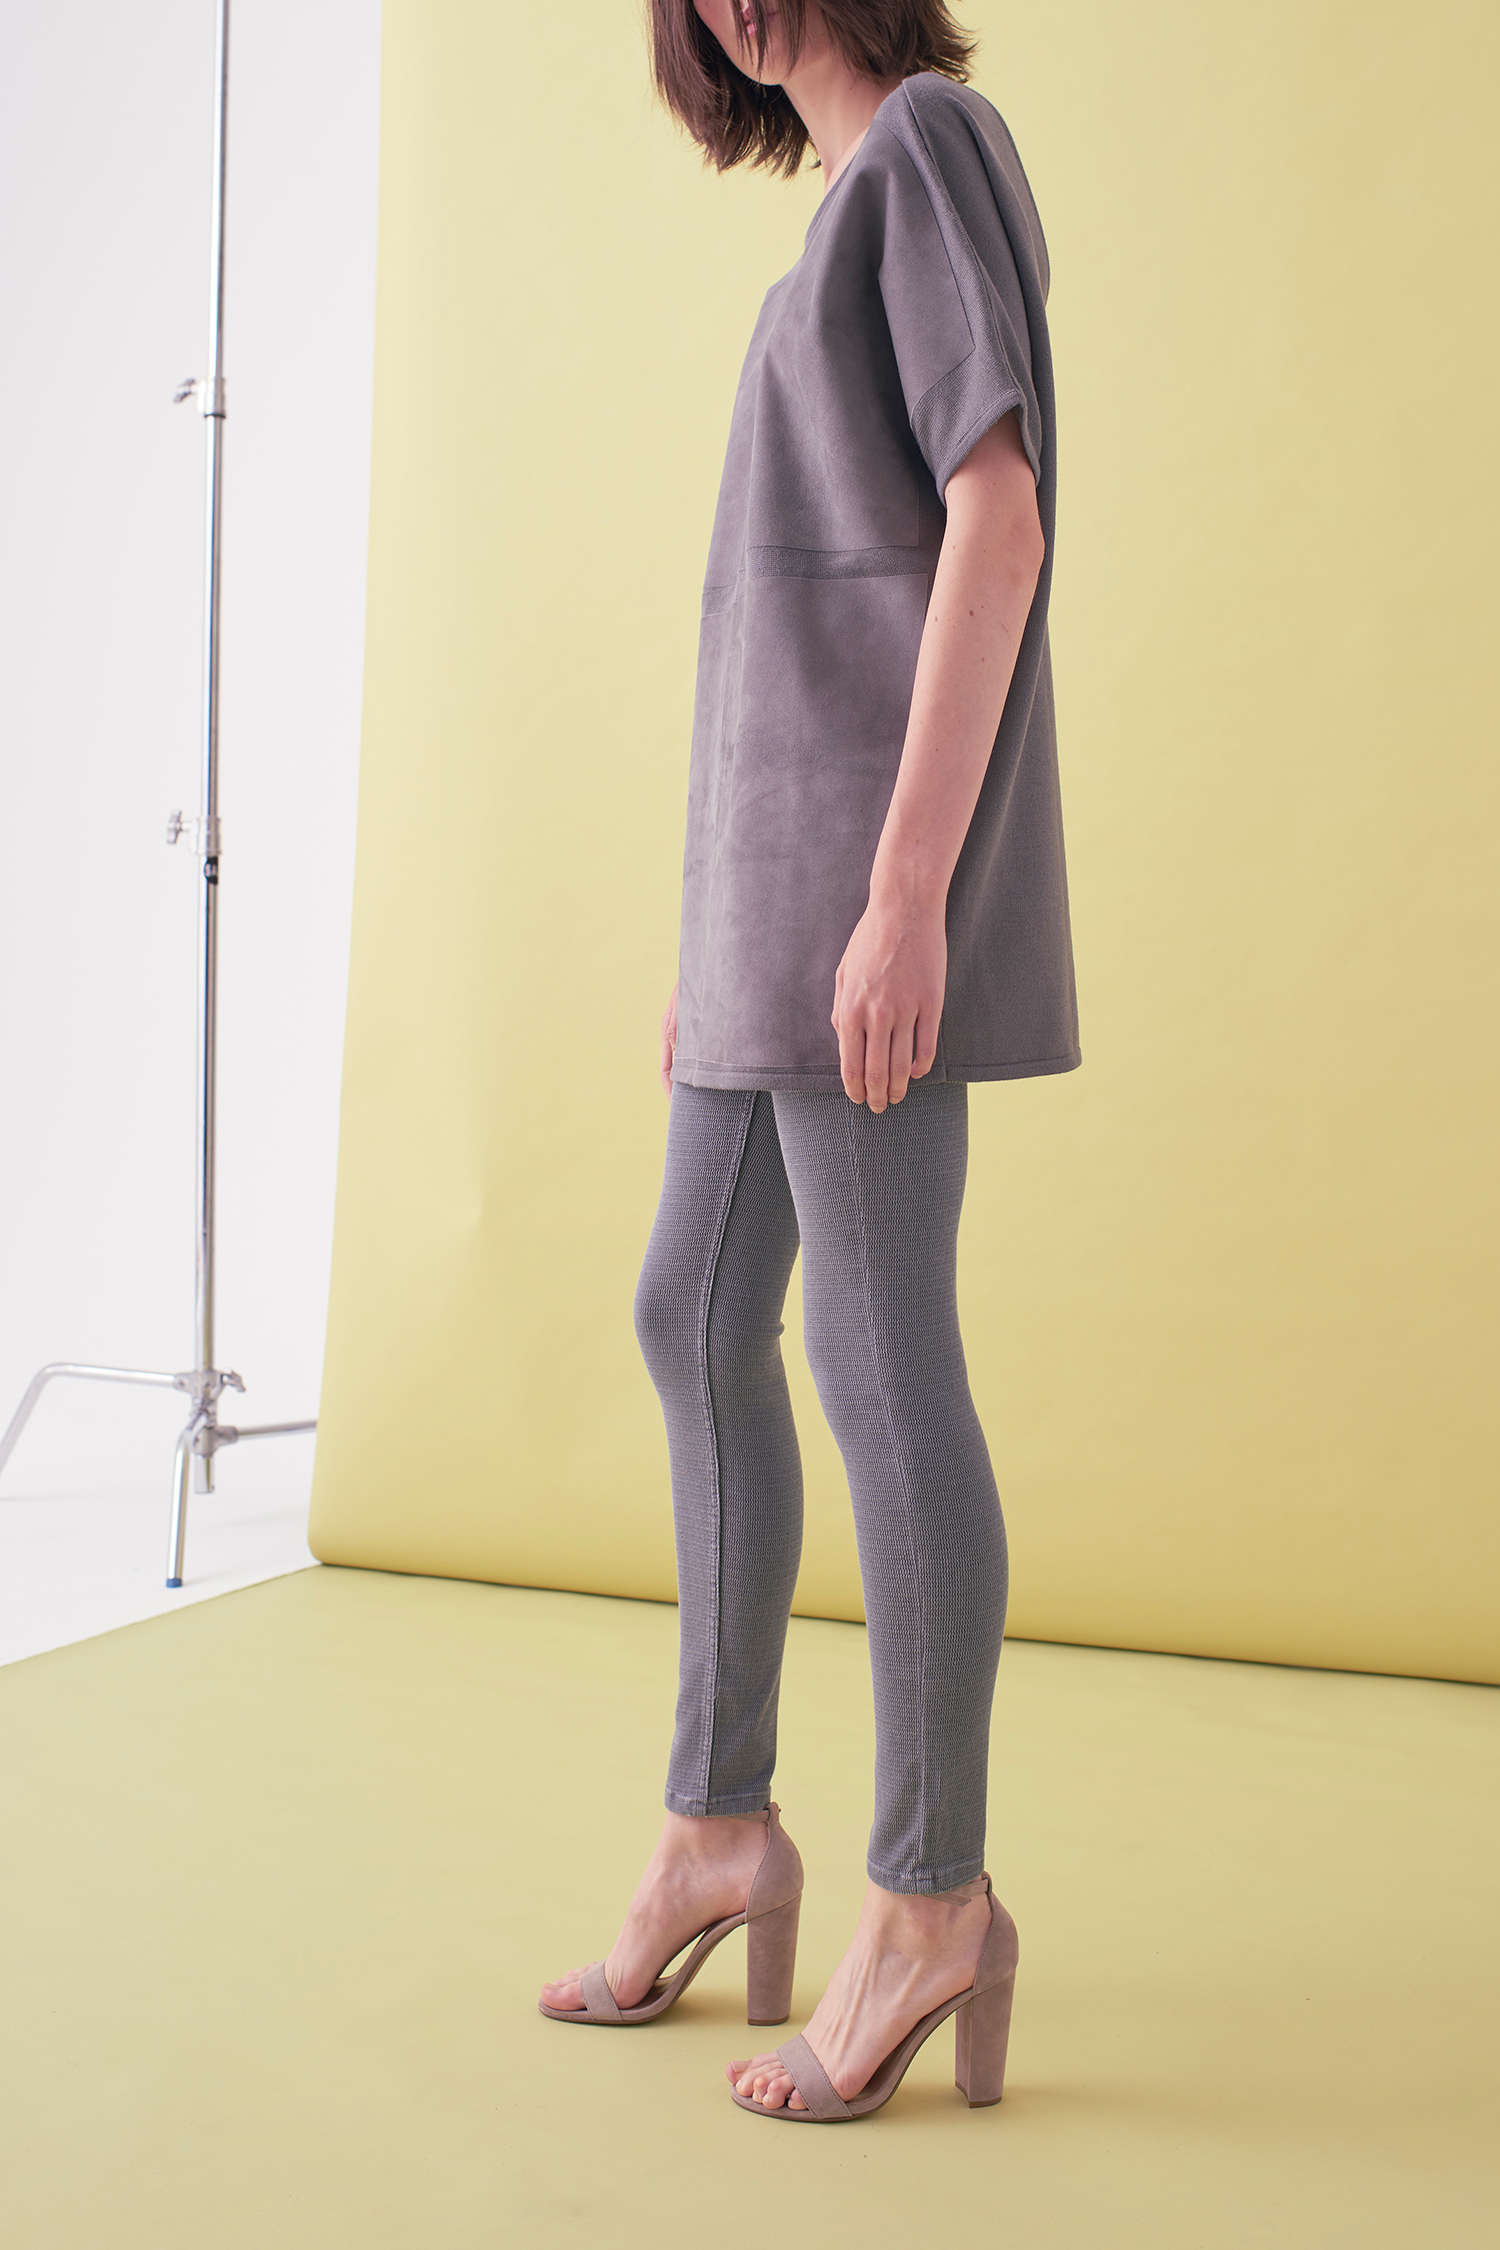 Sarah_Swann_SS17_07_Suede_And_Knit_Sweater_Pewter_S.jpg